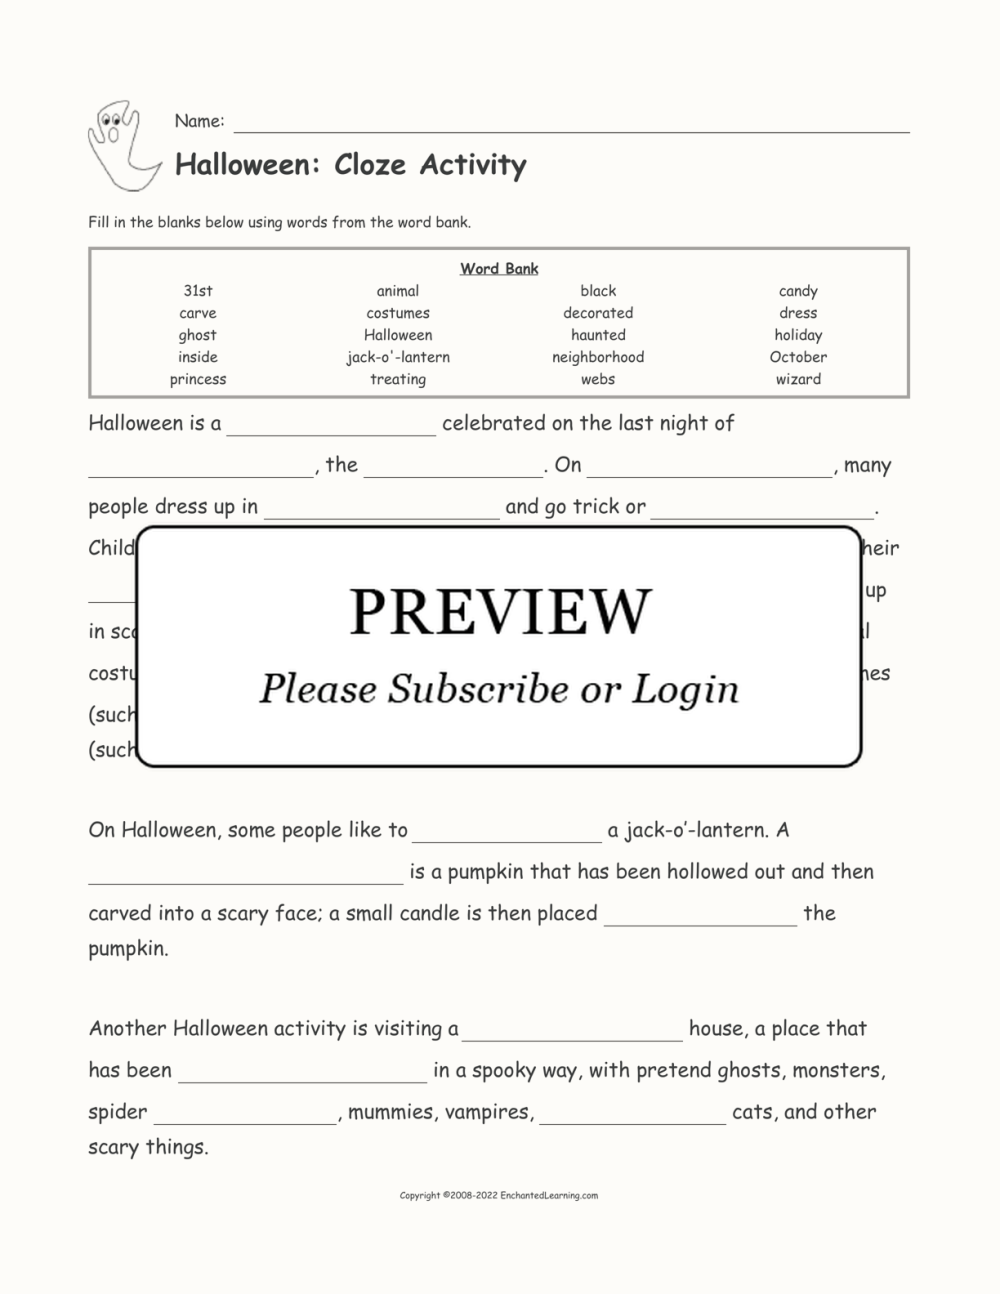 medium resolution of Halloween Cloze Activity - Enchanted Learning